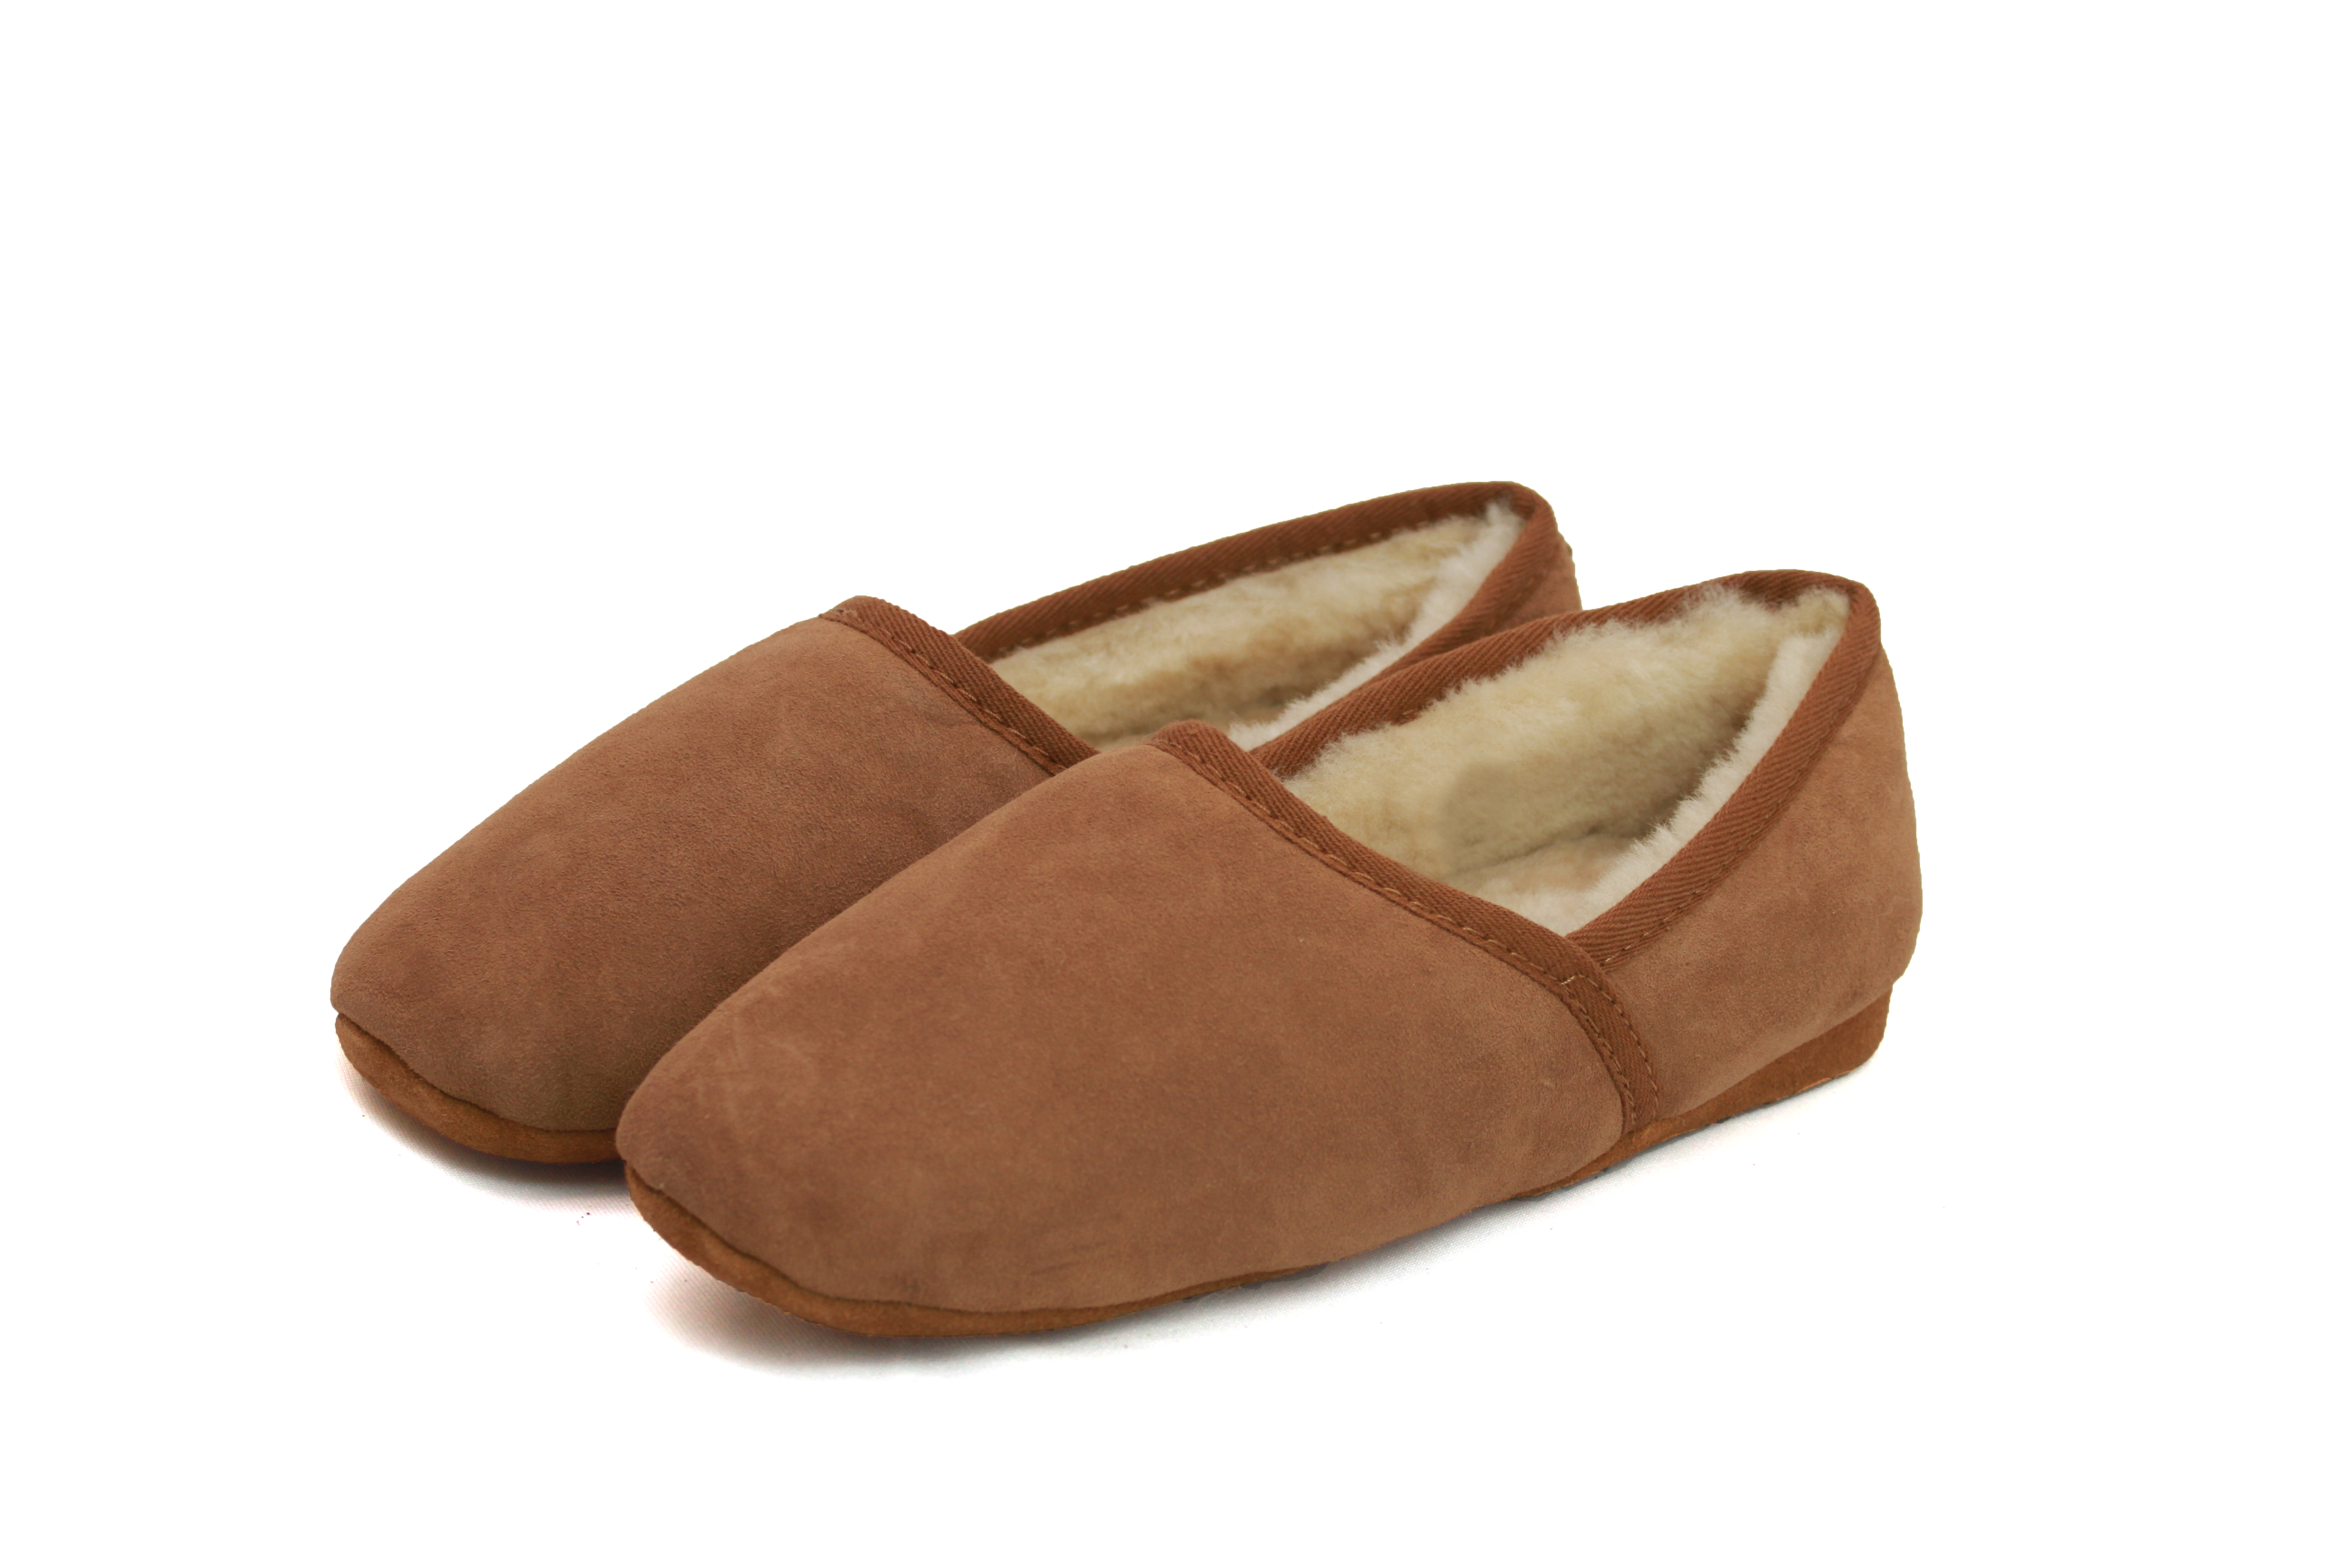 Sheepskin turn slipper – ECM003